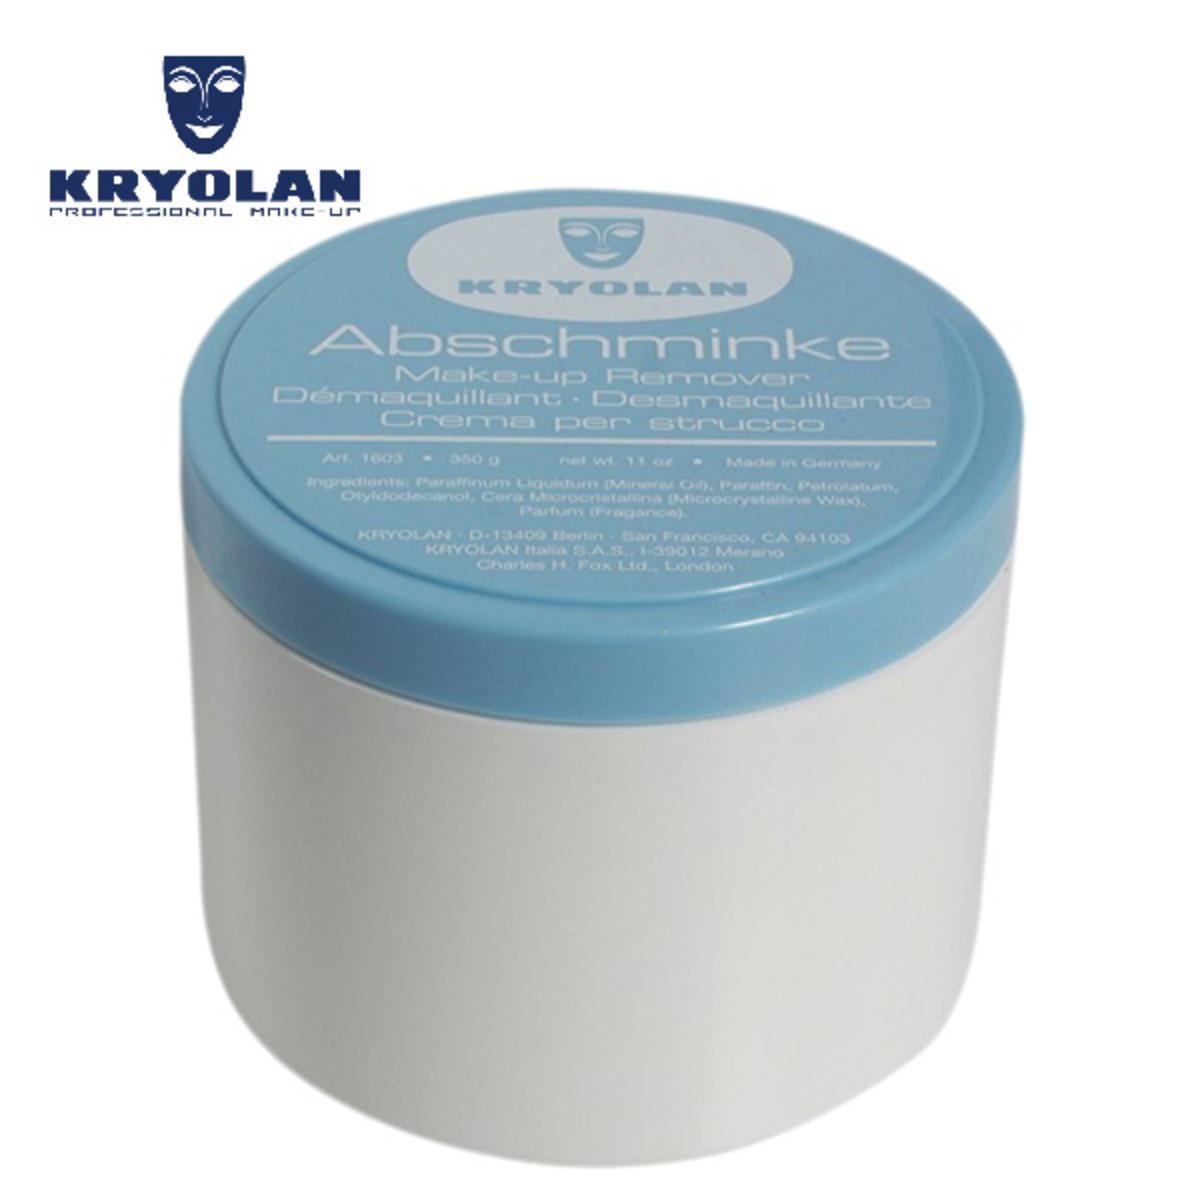 Makeup Remover - 350ml - (Authorised Goods)